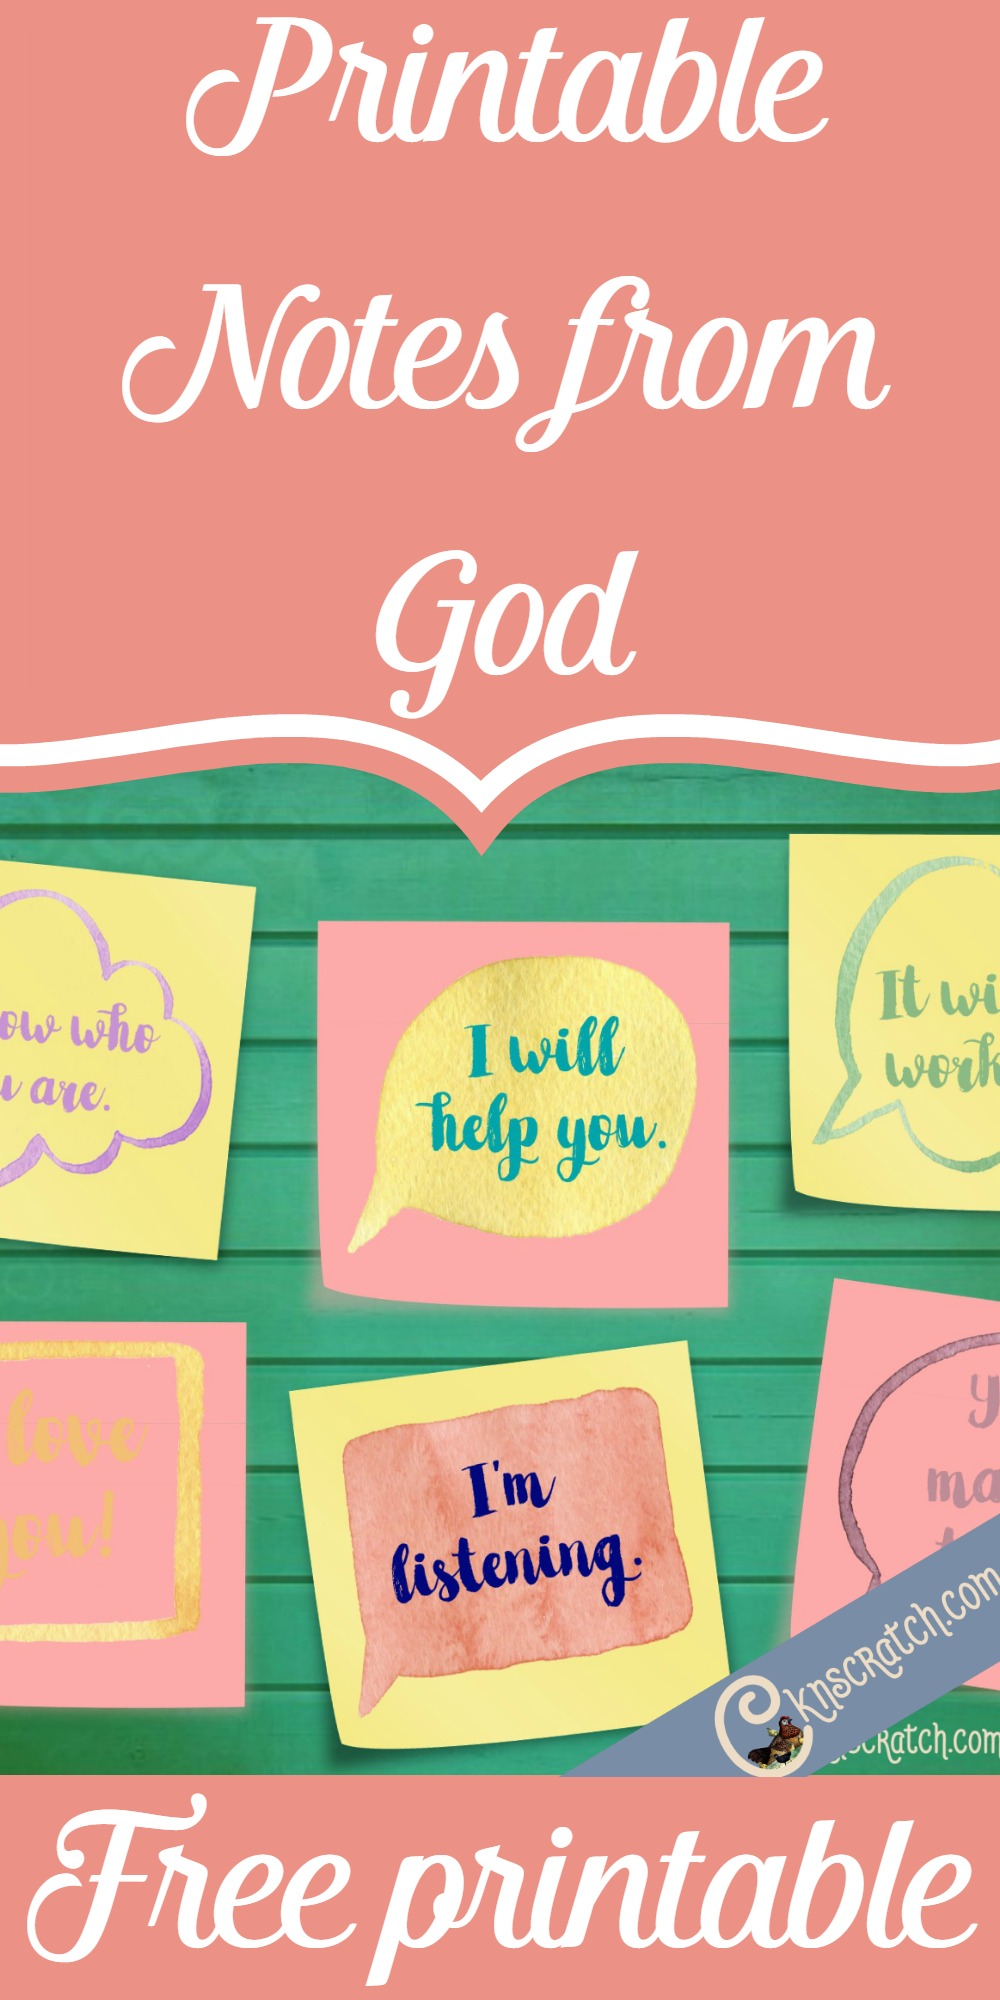 You could put these in your scriptures or on your mirror- great idea. Printable notes from God